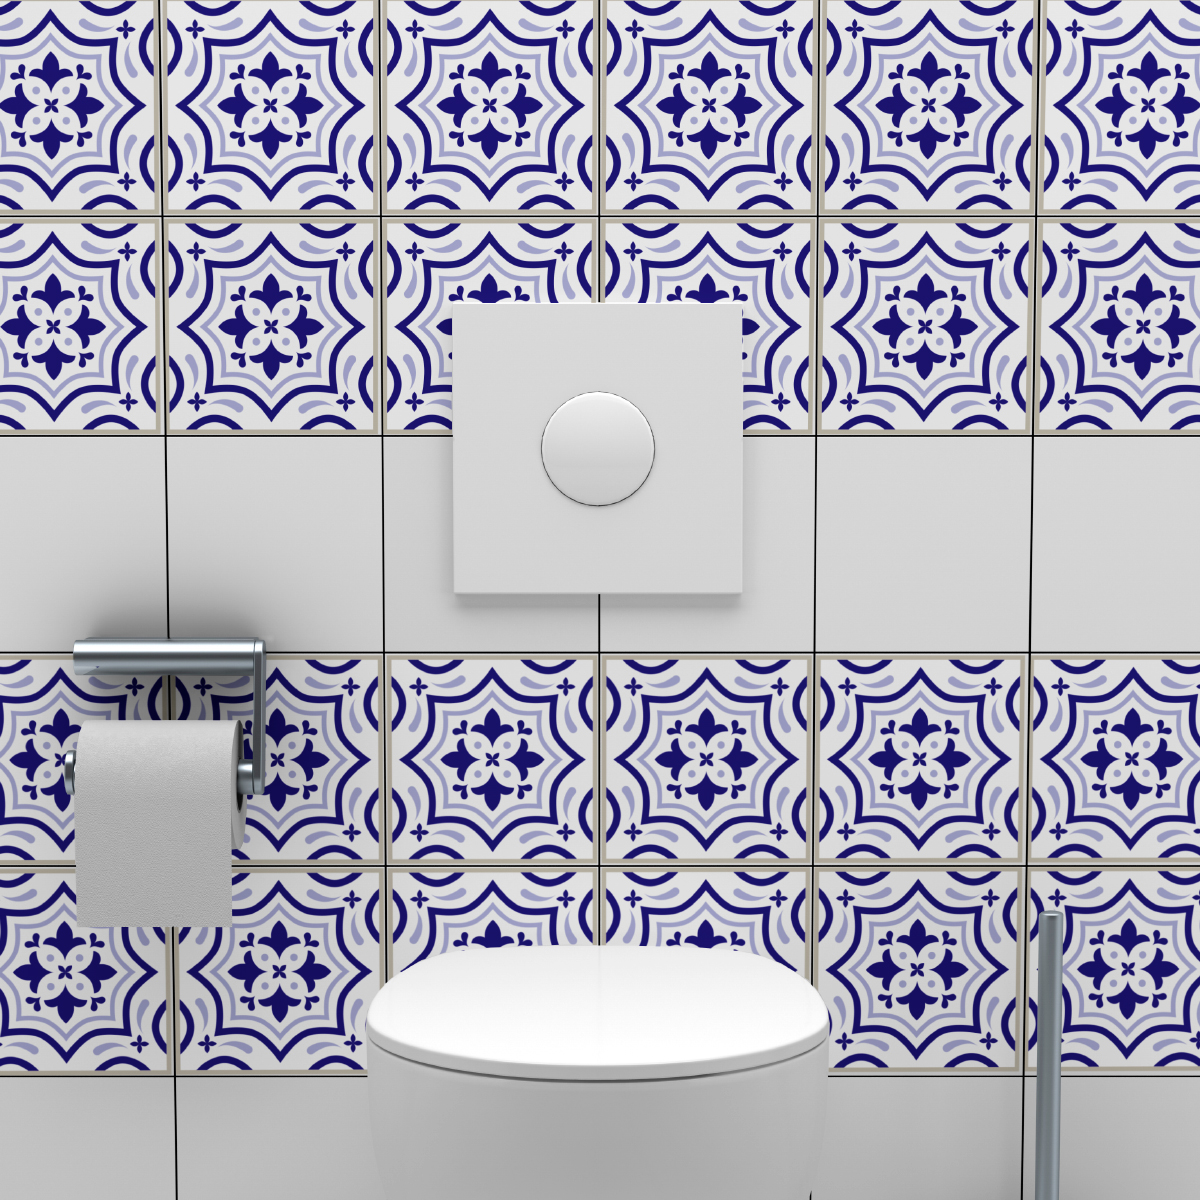 24 stickers carreaux de ciment azulejos carmen salle de for Stickers carreaux salle de bain